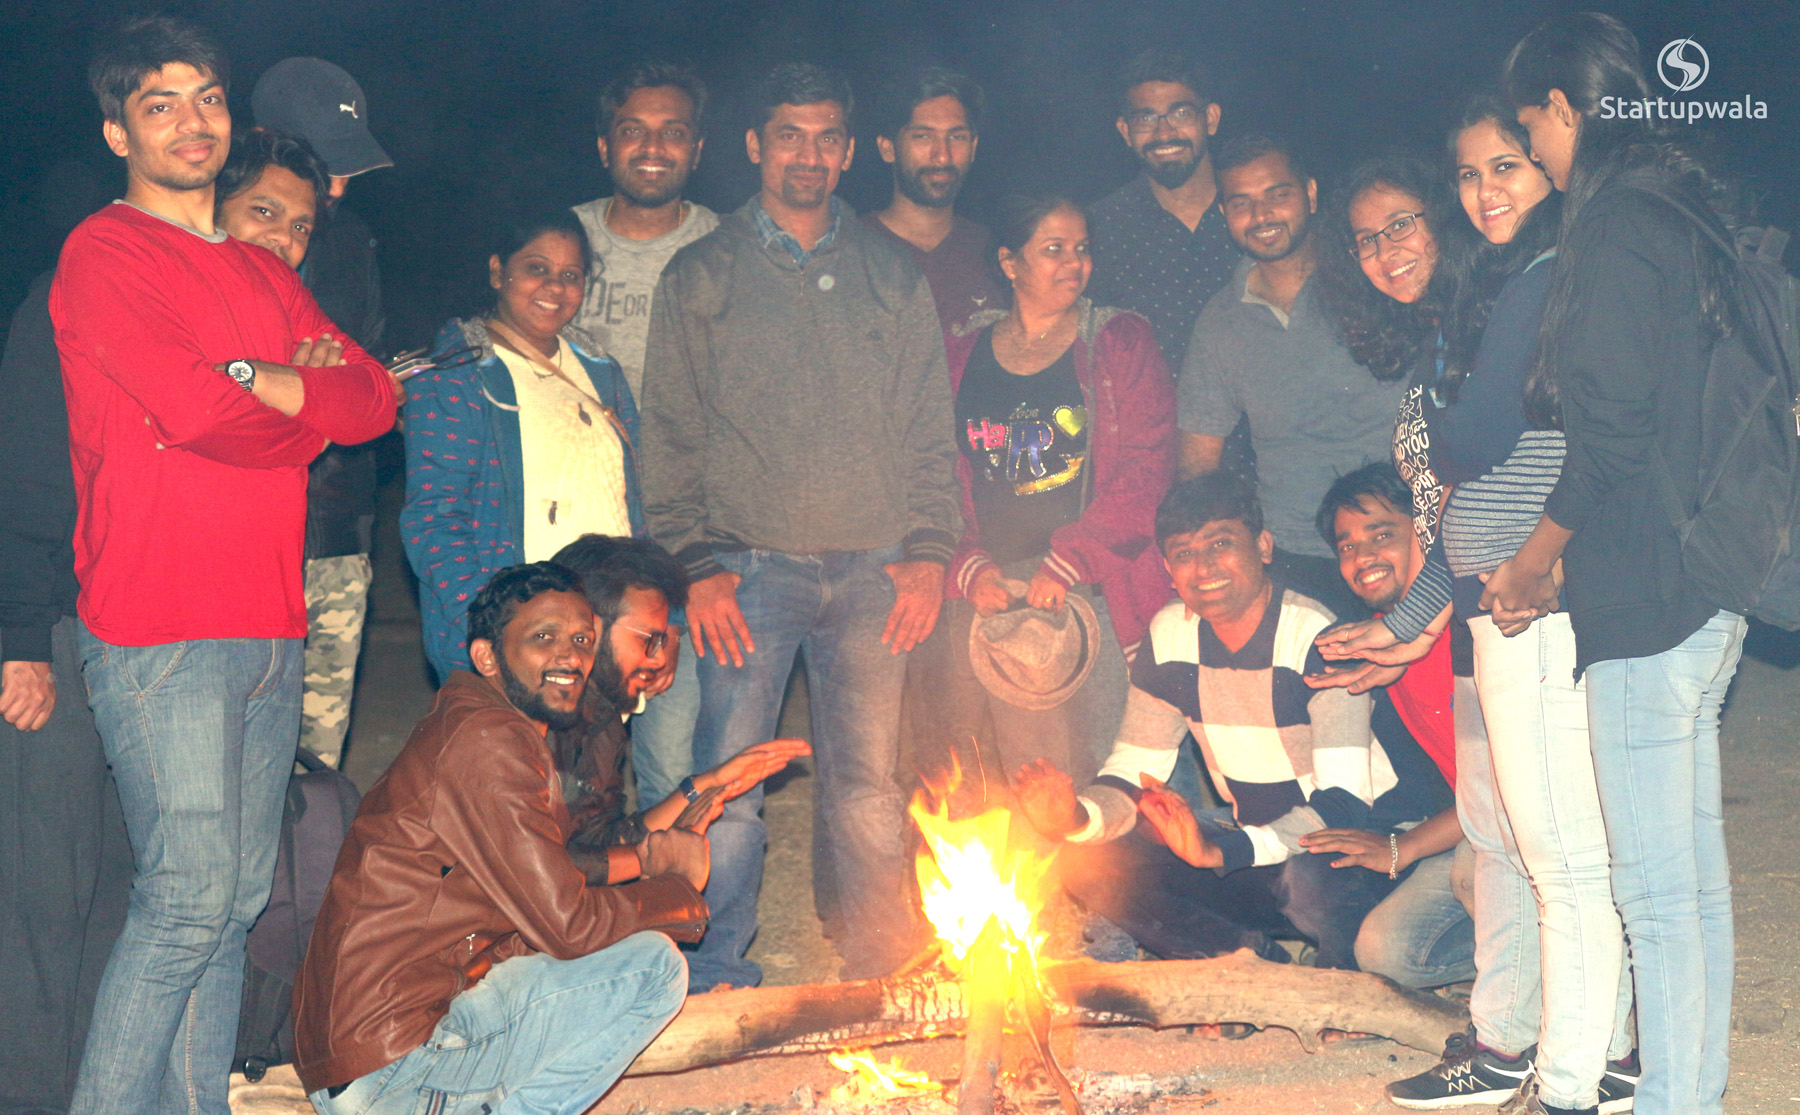 Camp fire - startupwala team